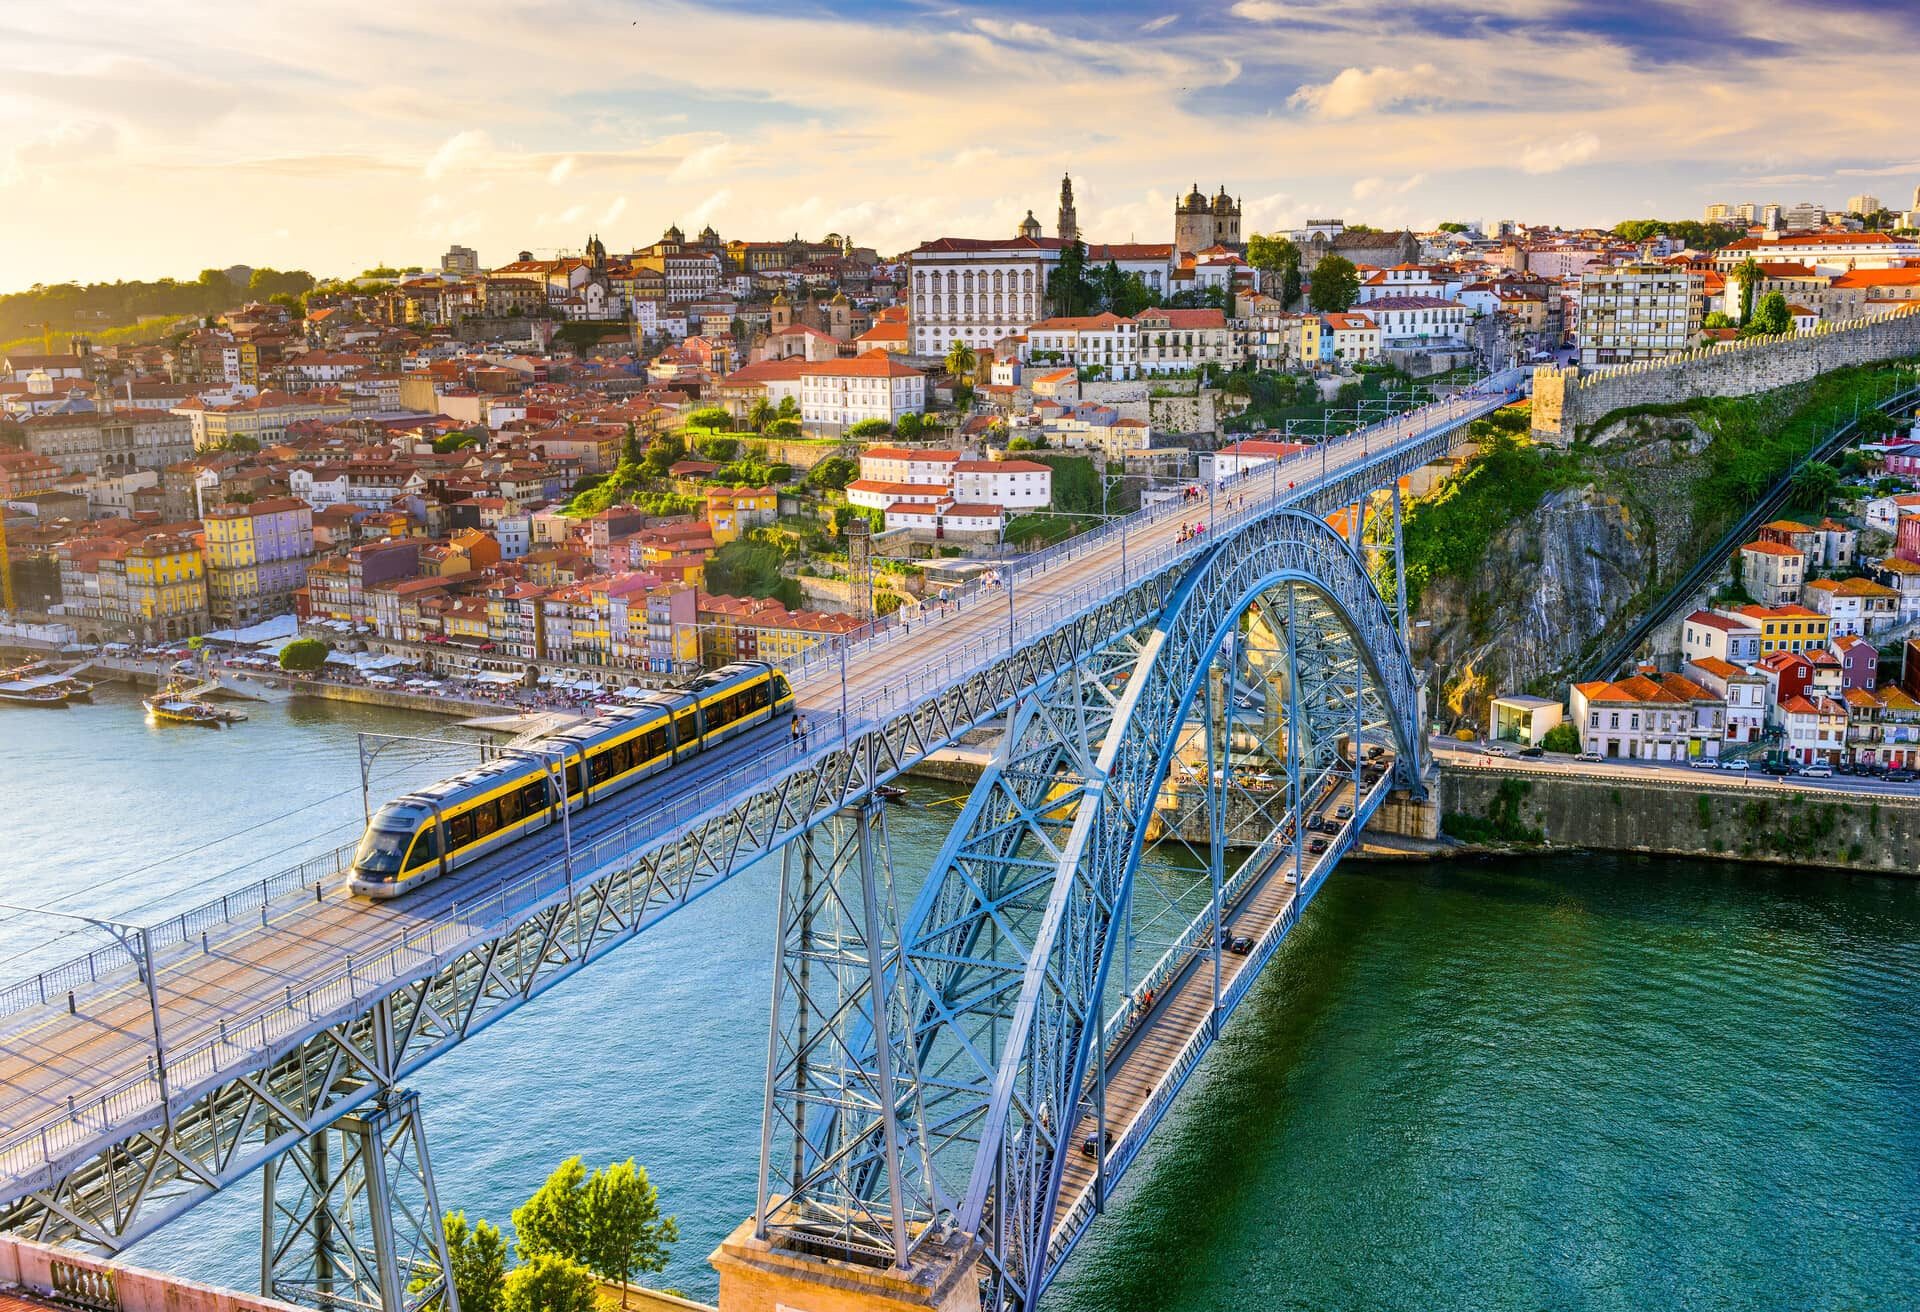 City view in Portugal on the Douro river and the Ponte Luís